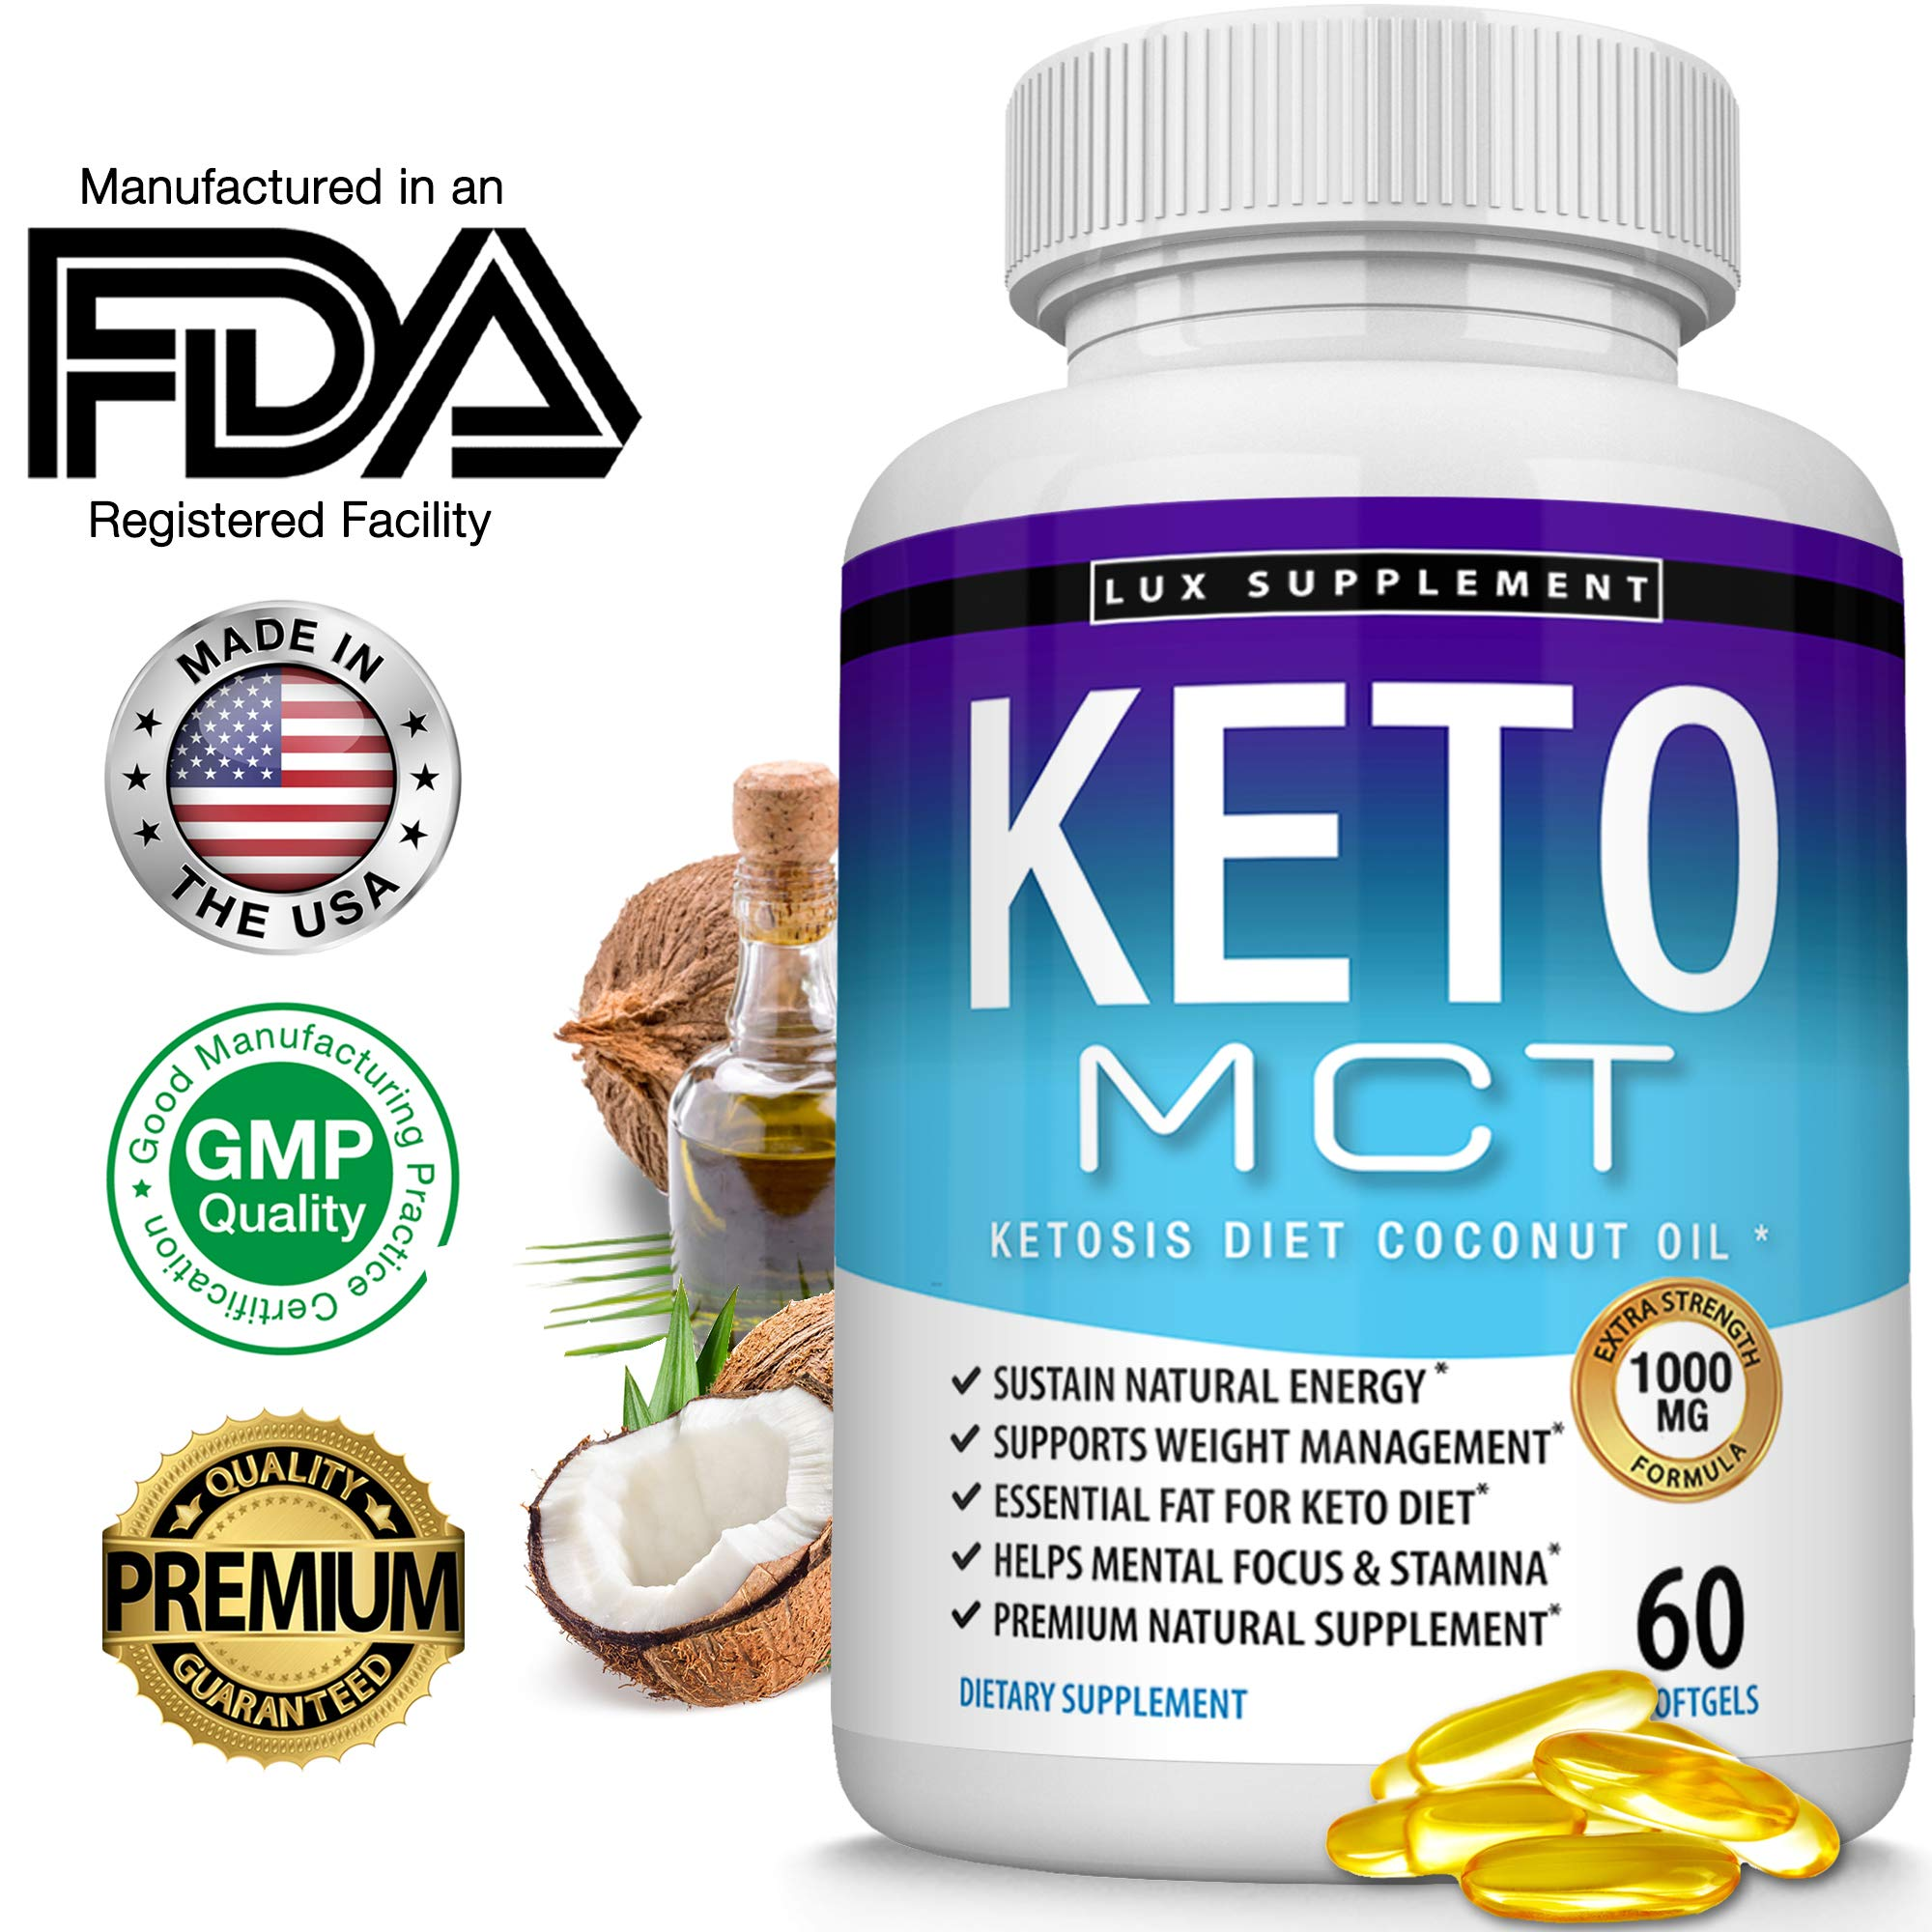 Lux Supplement Keto Mct Oil Softgels Advanced Ketosis Diet - 1000 Mg Natural Pure Coconut Oil Extract Pills for Ketogenic & Ketone Diet, Easy to Digest Fuel for Energy & Brain, Men Women, 60 Softgels by Lux Supplement